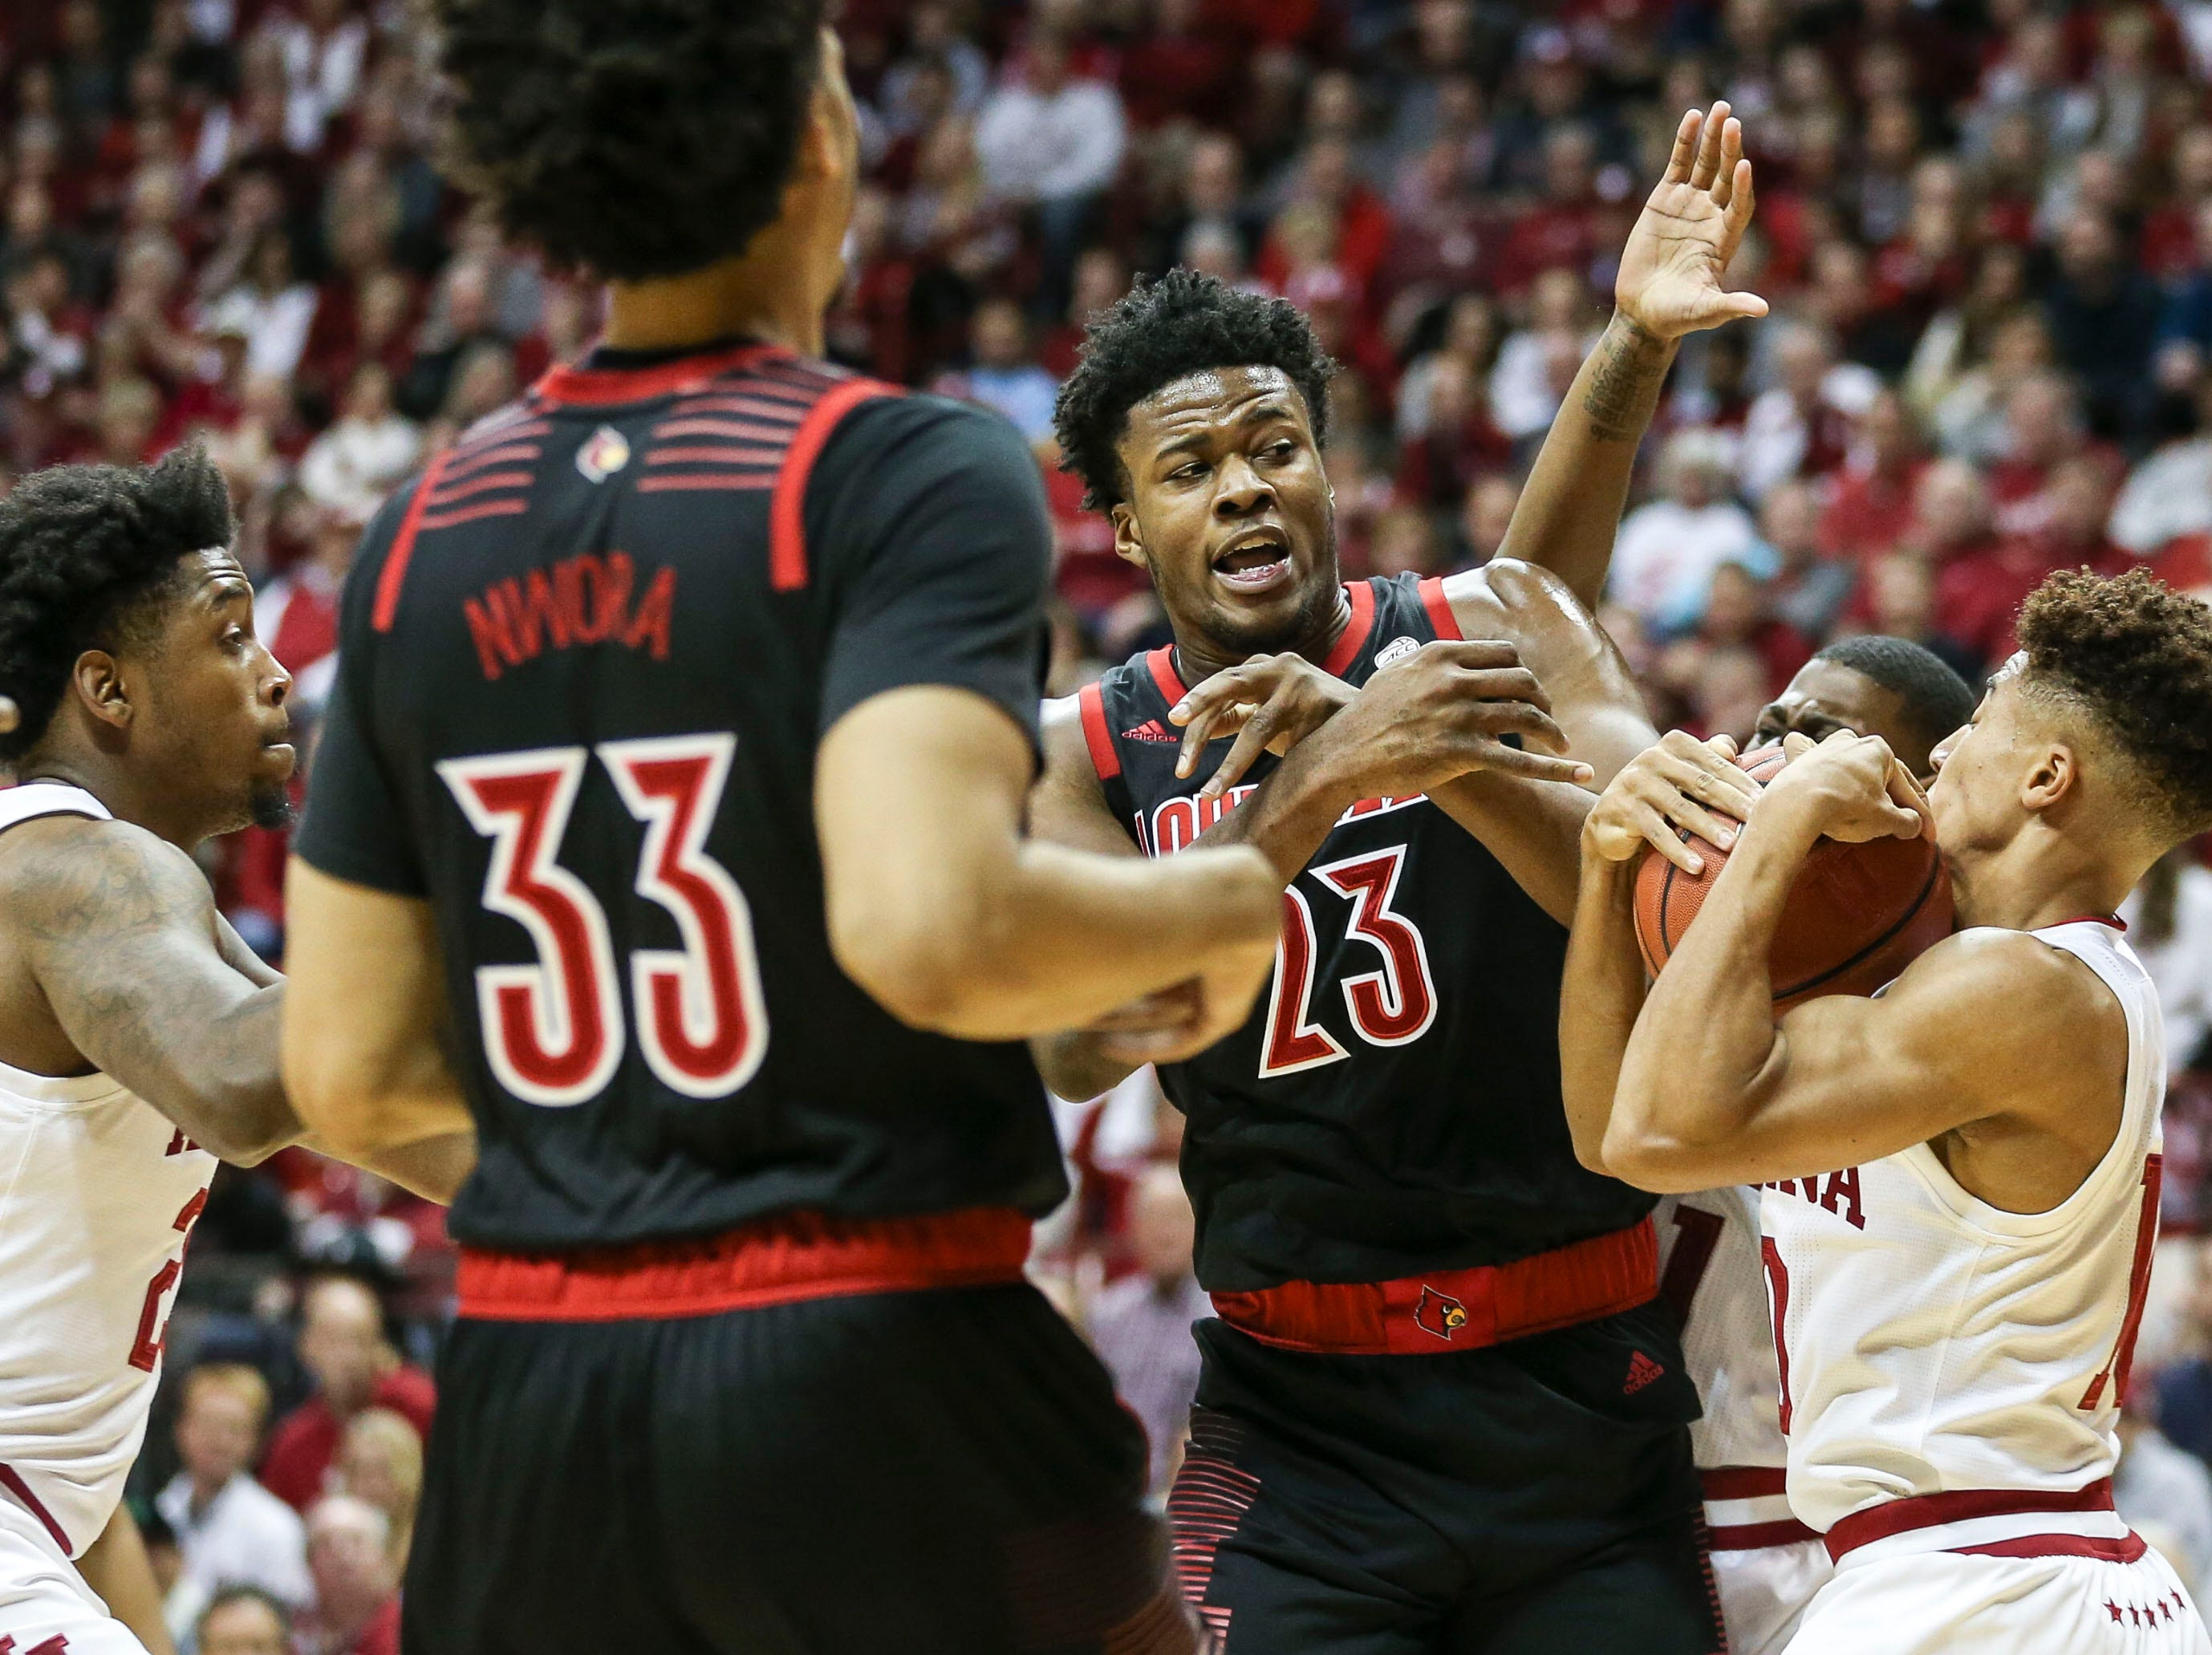 Louisville's Steven Enoch loses control of the ball against Indiana's Rob Phinisee in the second half Saturday, Dec. 8, 2018 at Simon Skjodt Assembly Hall in Bloomington, Ind.